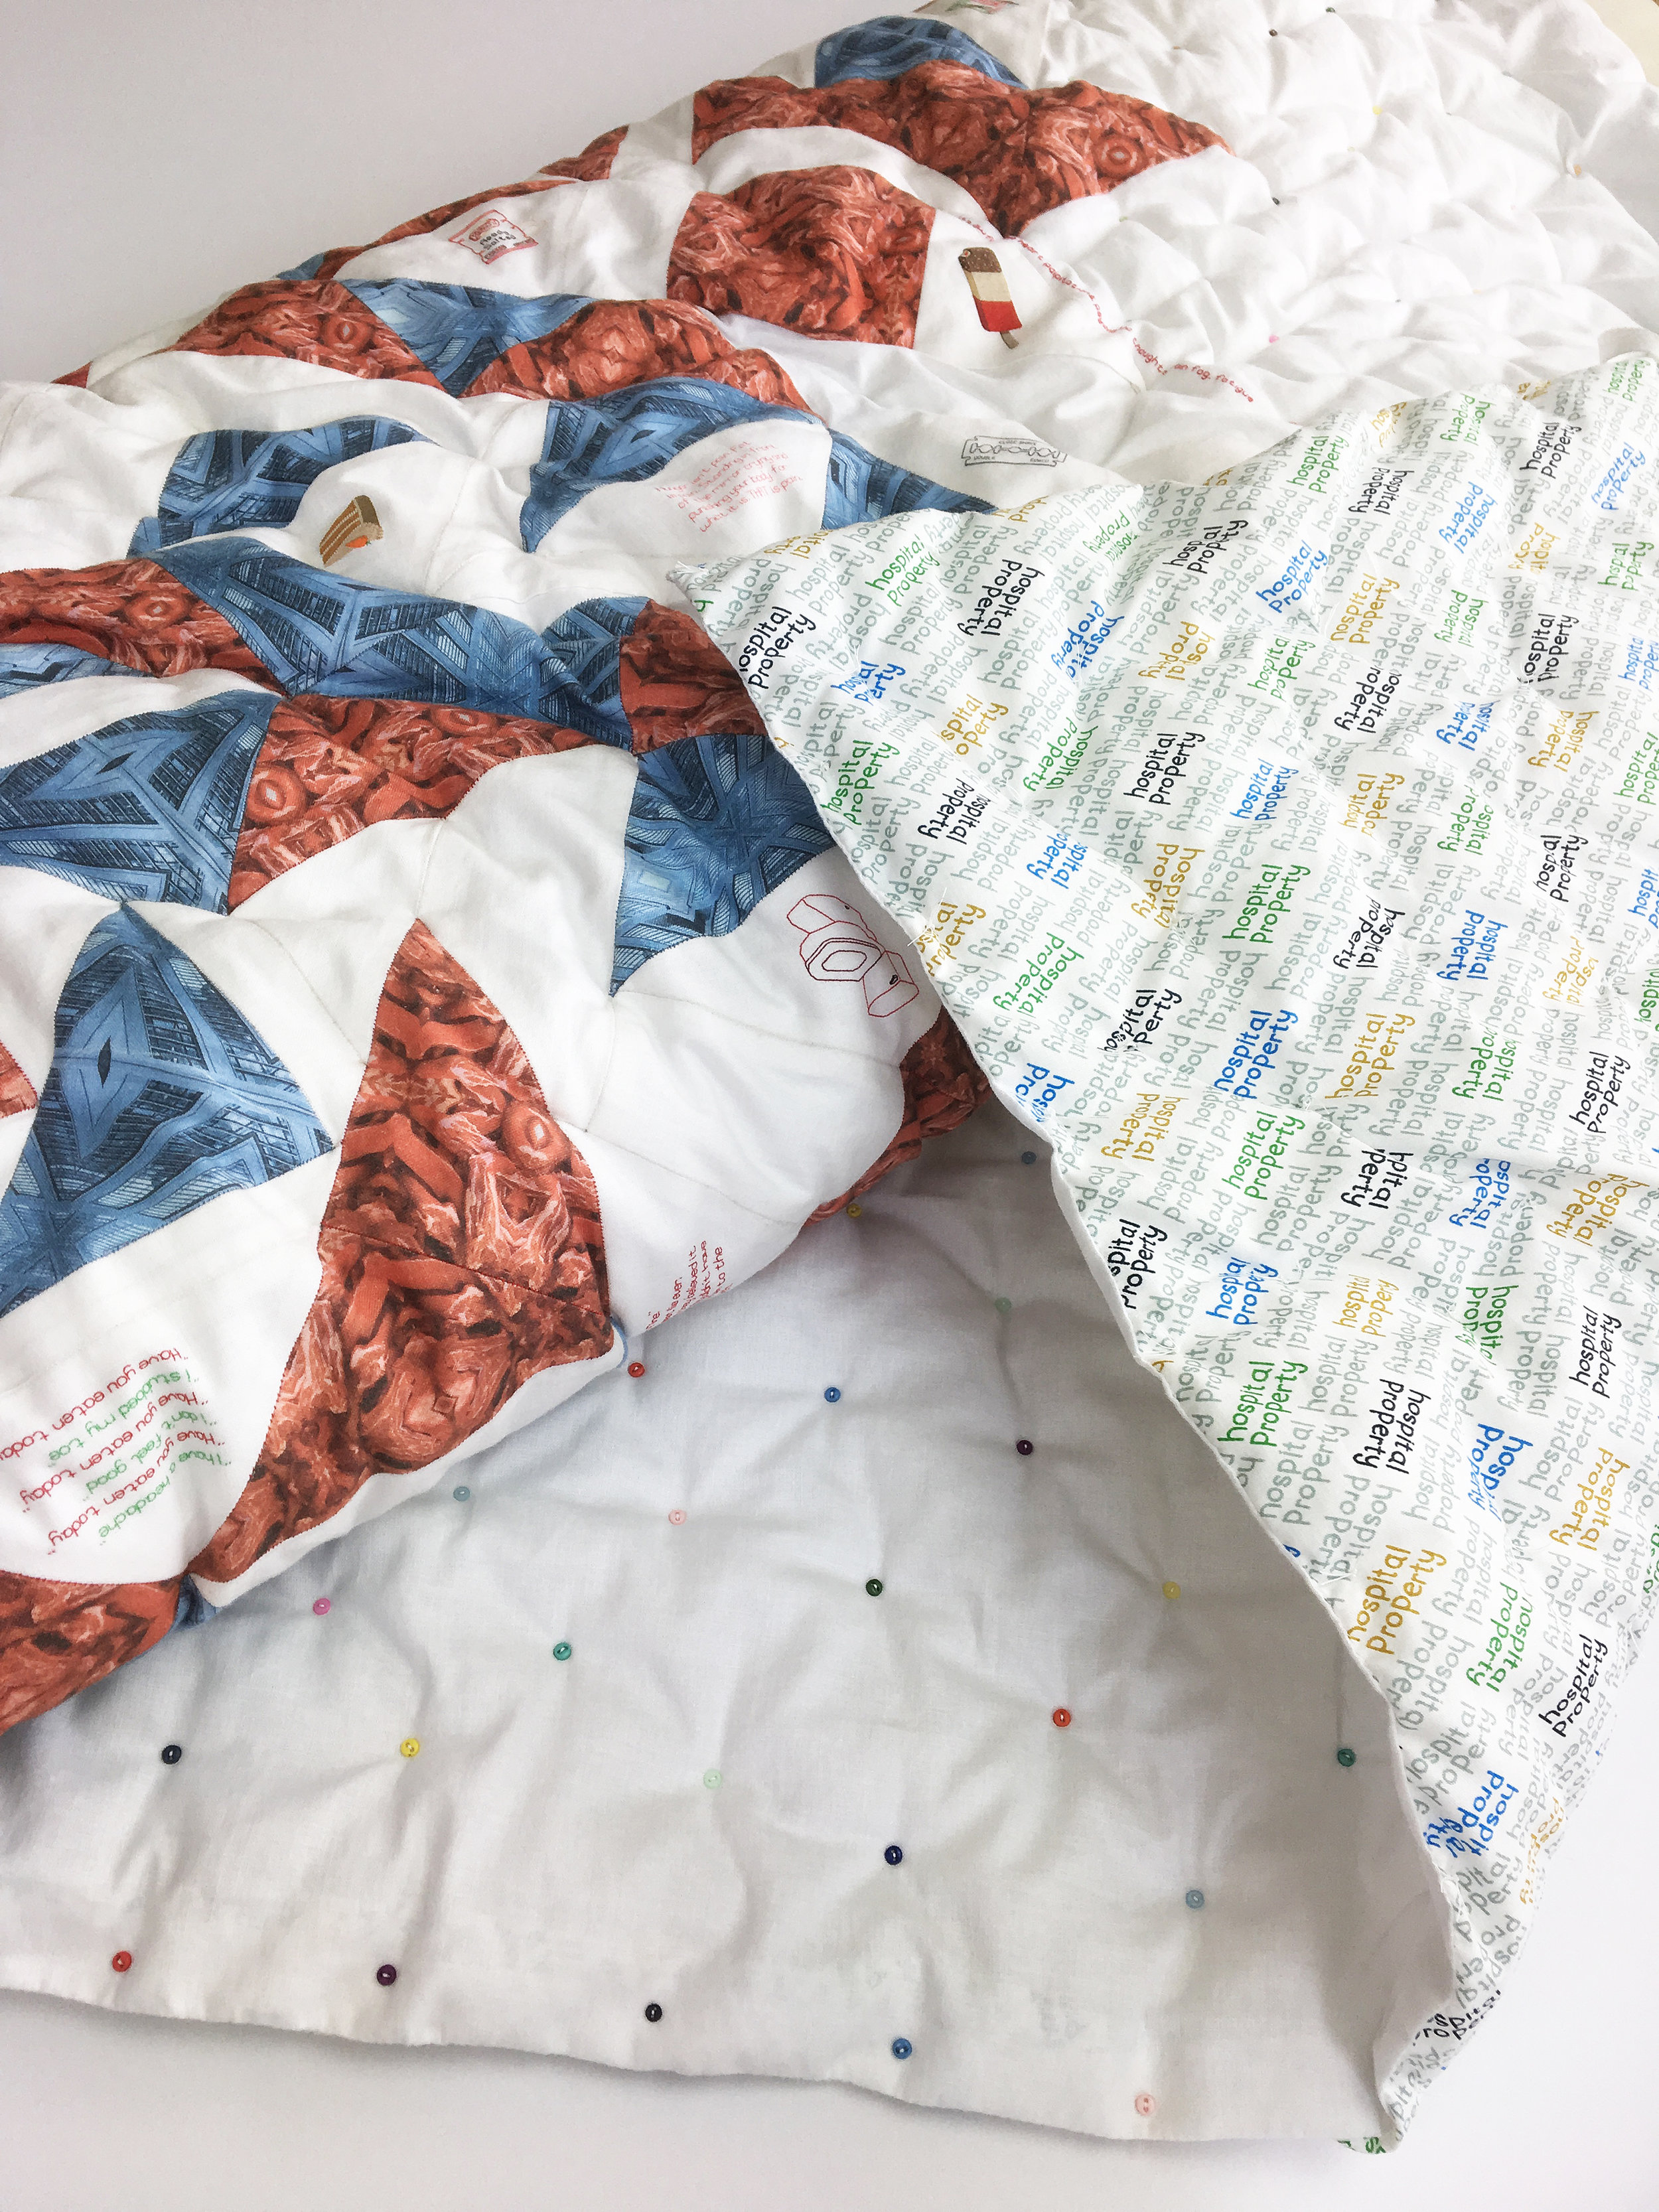 The backing of this quilt has been made using three hospital gowns